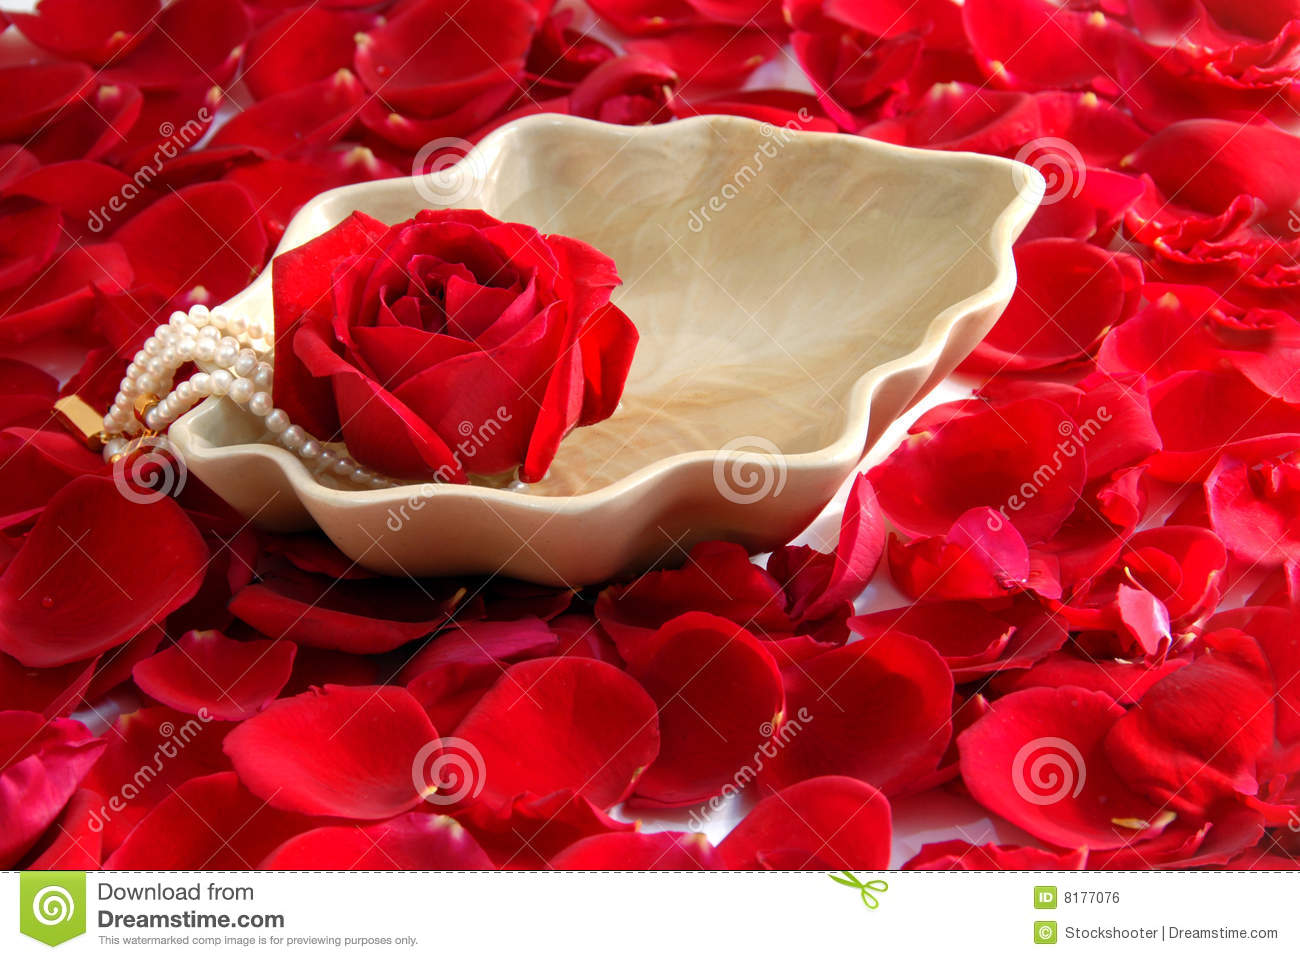 Red Rose Flower Petals Spa Aromatherapy Stock Photo Image Of Pure